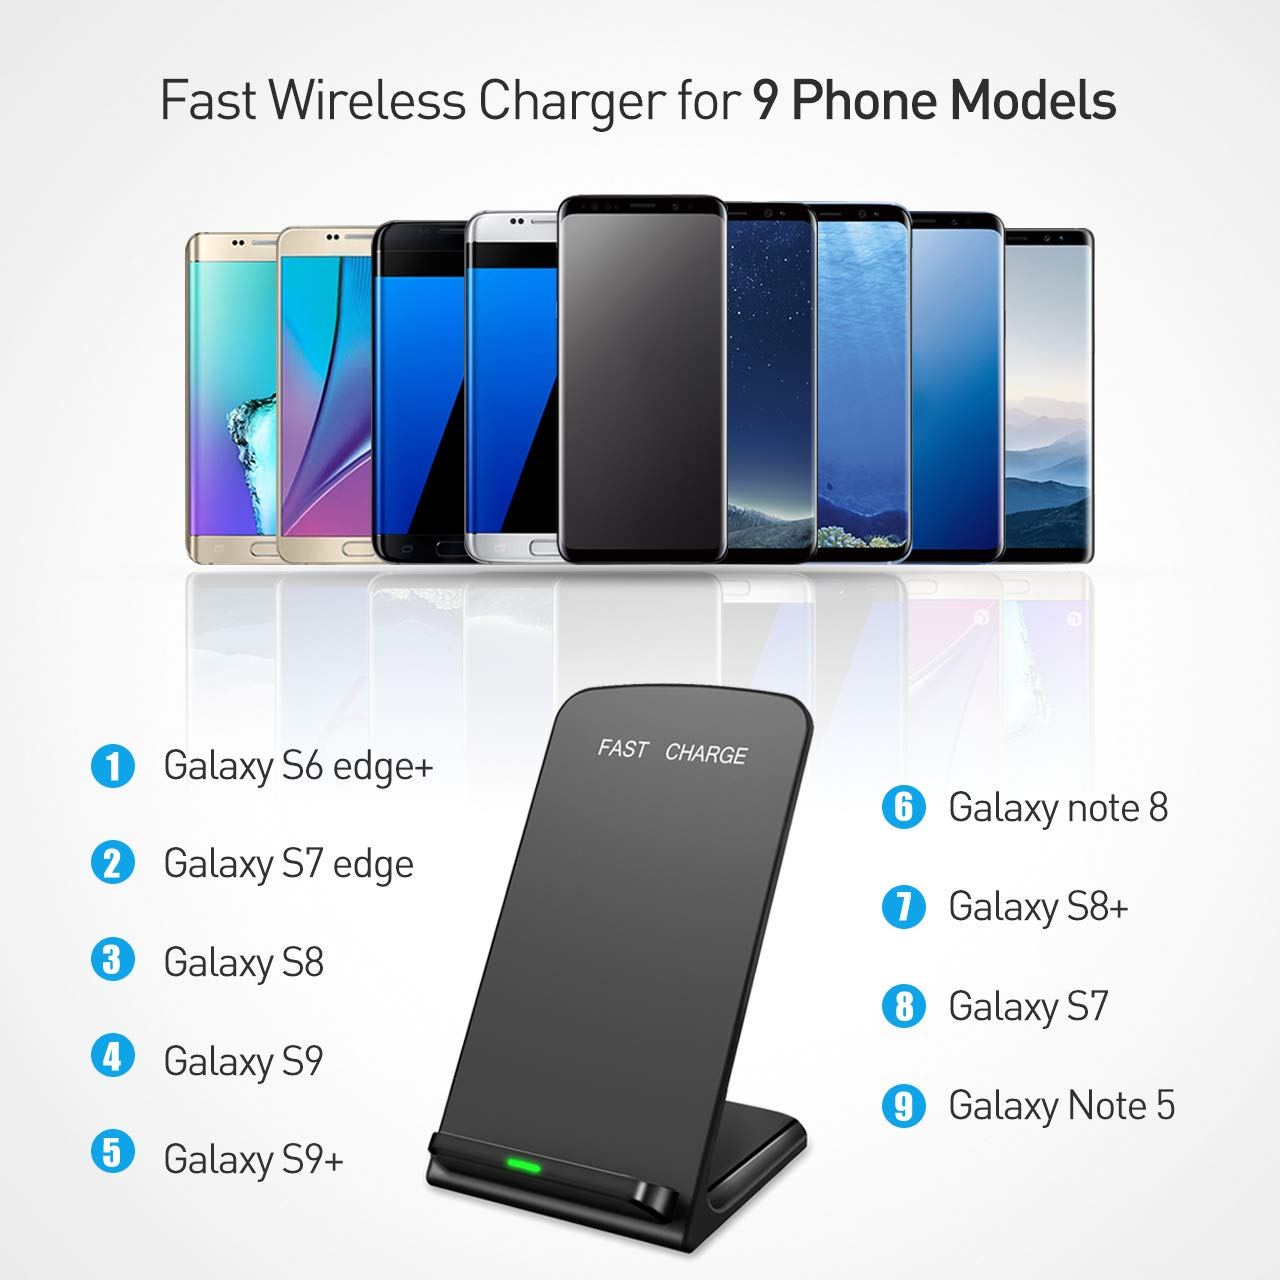 Seneo (Upgraded) Wireless Charger, Qi Certified Fast Wireless Charger Stand with QC 3.0 Adapter for Galaxy S9/S9+ Note 8/5 S8/S8+ S7/S7 Edge S6 Edge+, Standard Qi Charger for iPhoneX/8/8 Plus by Seneo (Image #4)